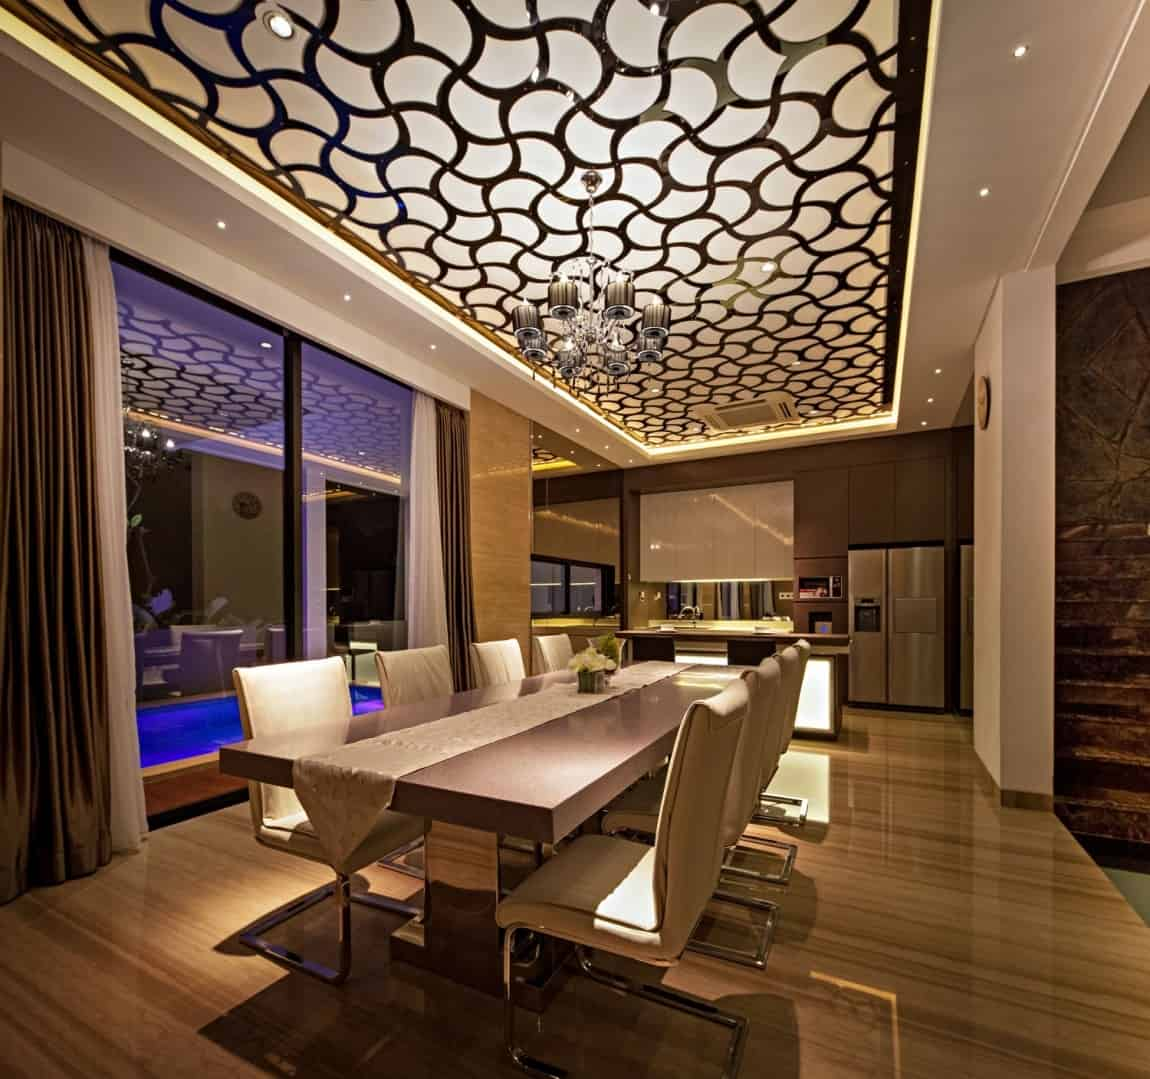 glass ceiling design - Kemist.orbitalshow.co